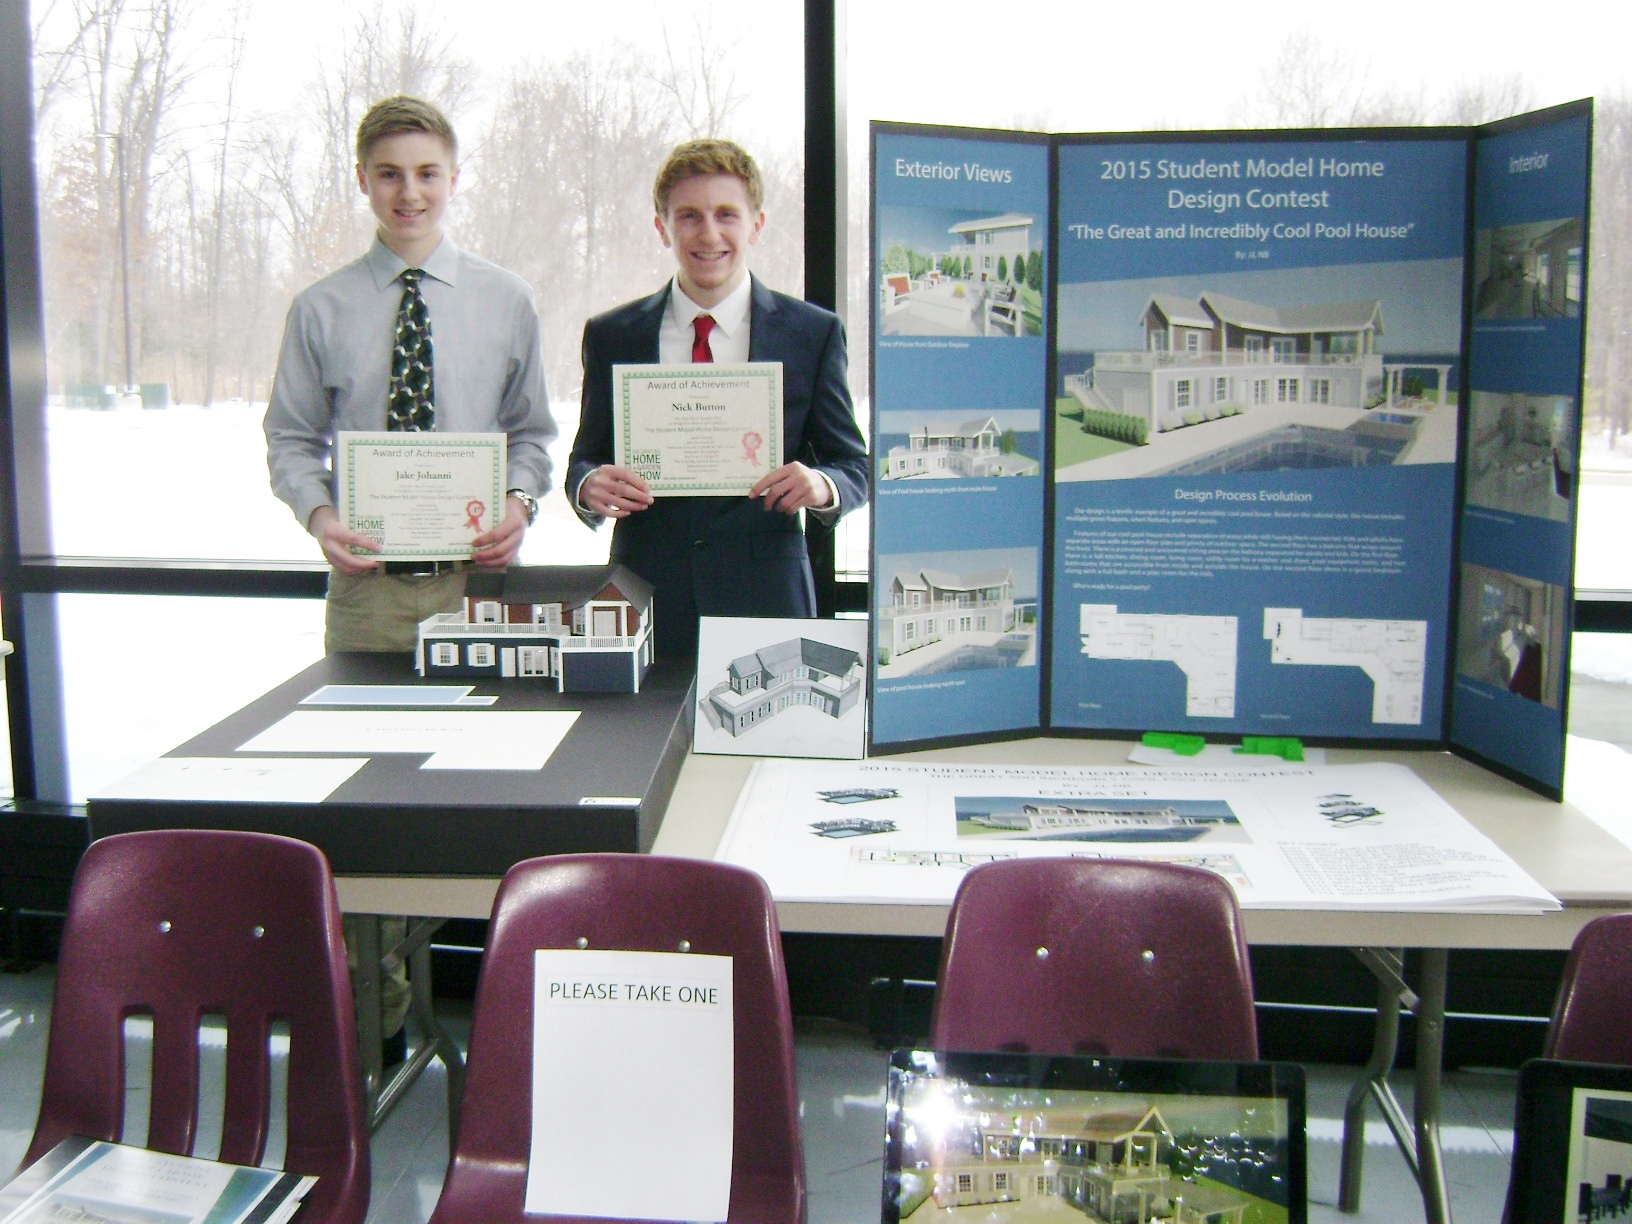 2015 Student Model Home Design Contest - Jake Johanni and Nicholas Button - grand prize winners.